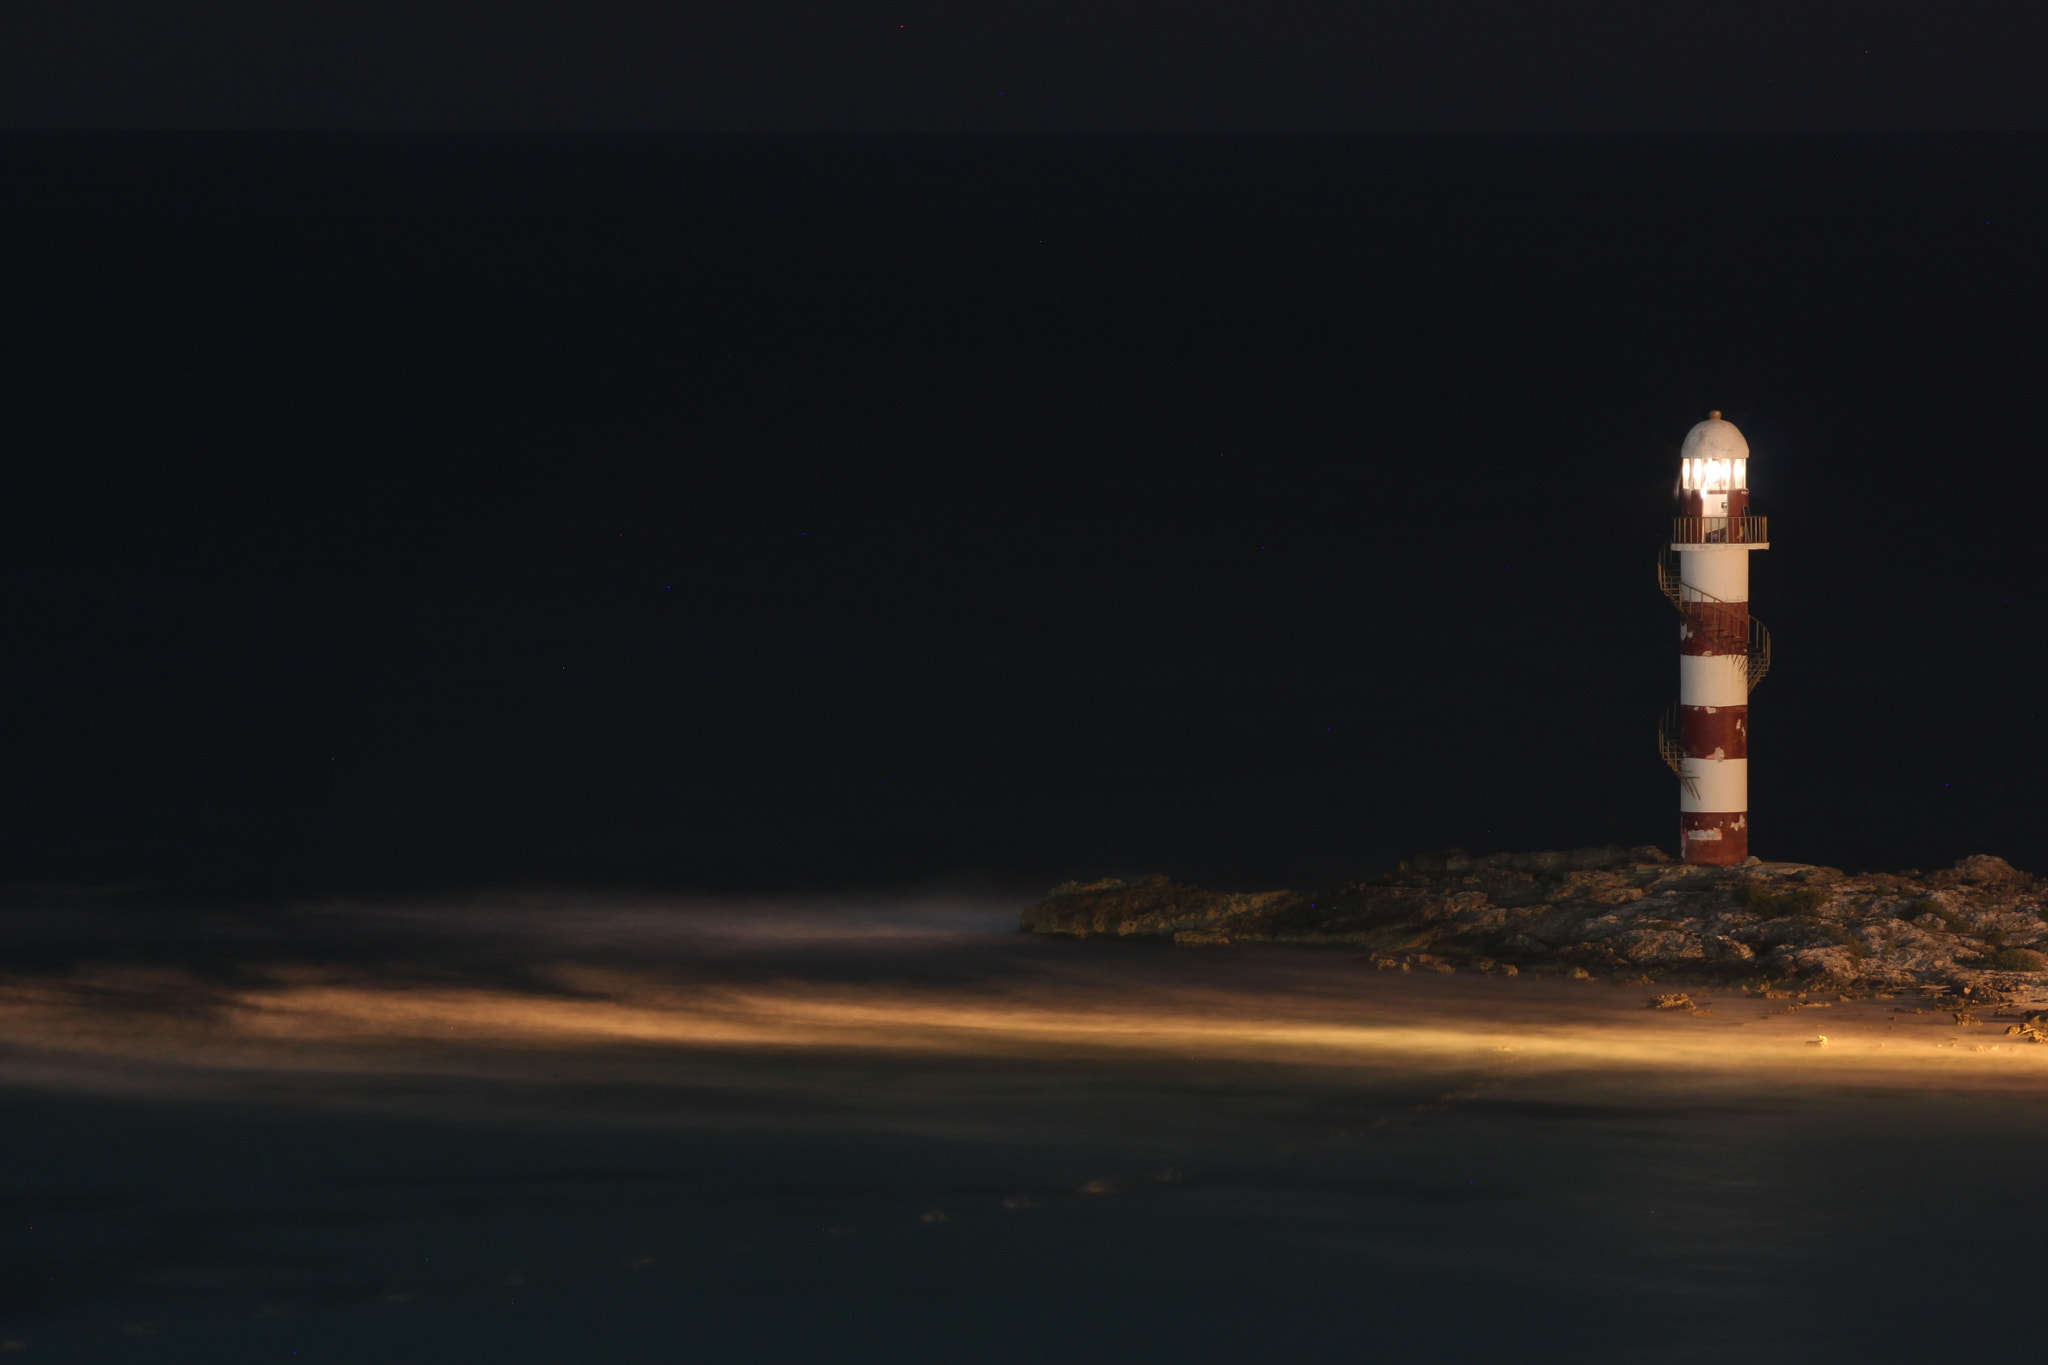 Photograph Cancun Lighthouse by Raul Arroyo on 500px